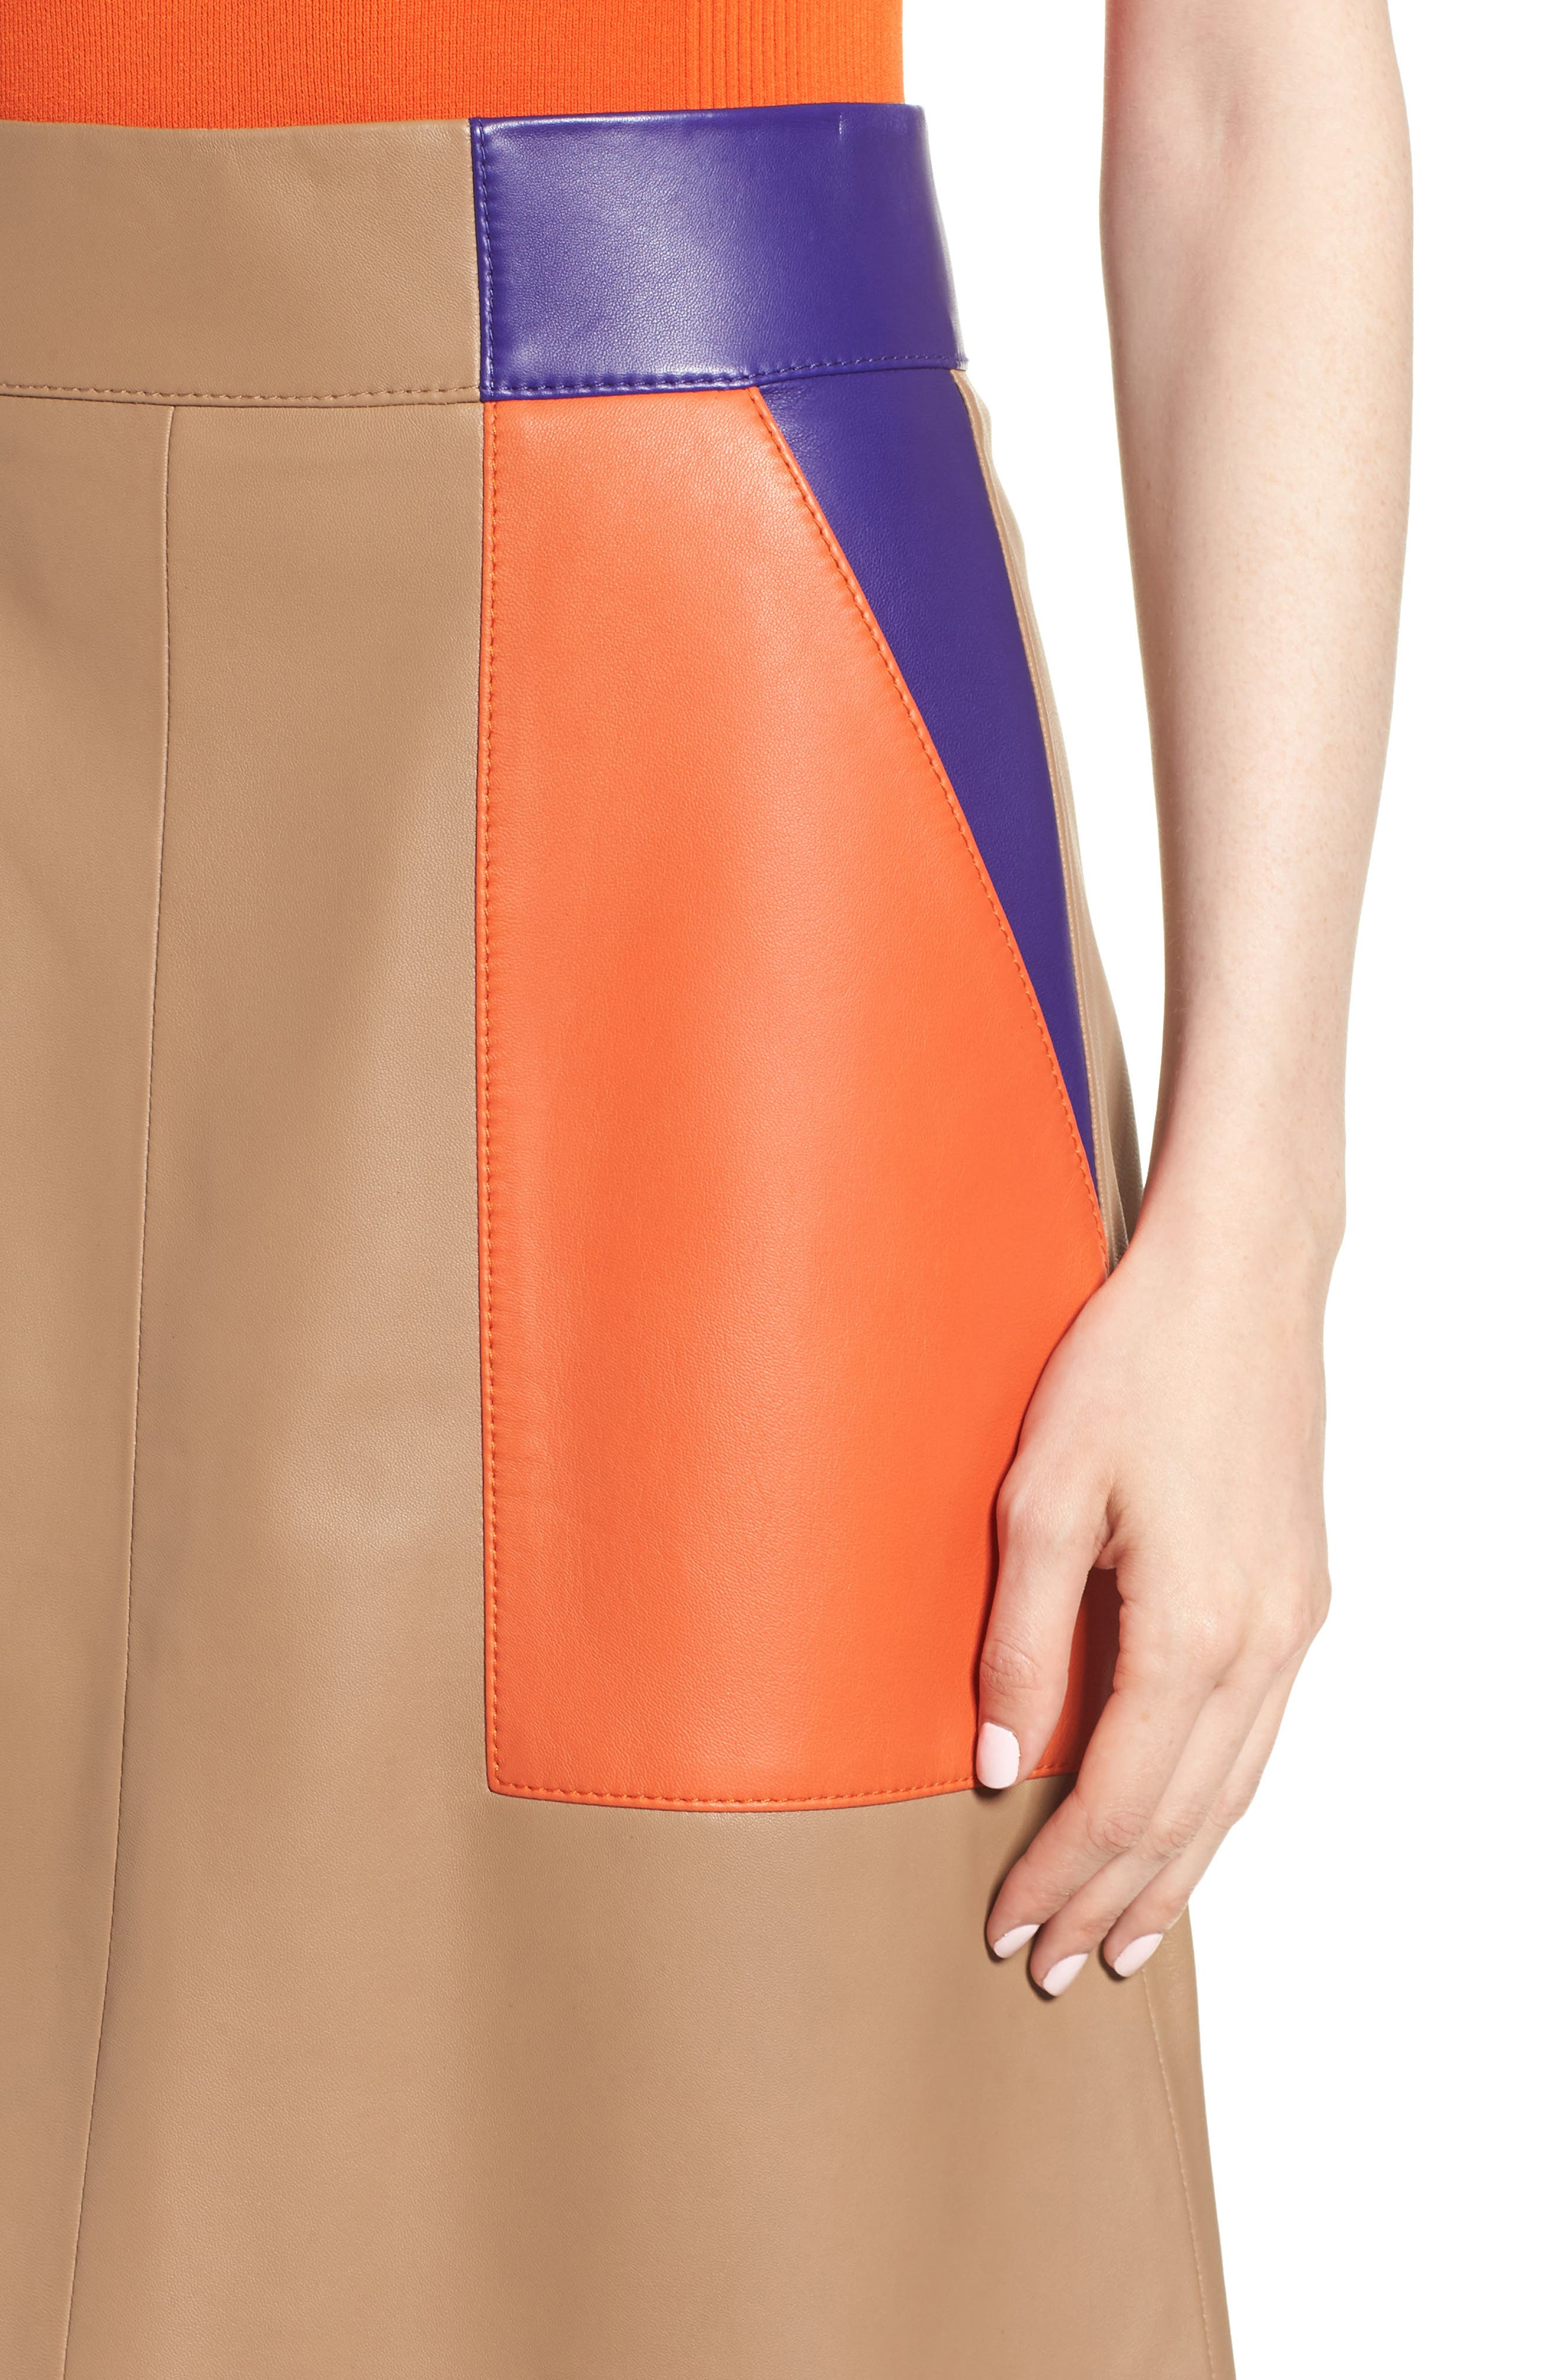 Seplea Colorblock Leather Skirt,                             Alternate thumbnail 4, color,                             Warm Clay Fantasy